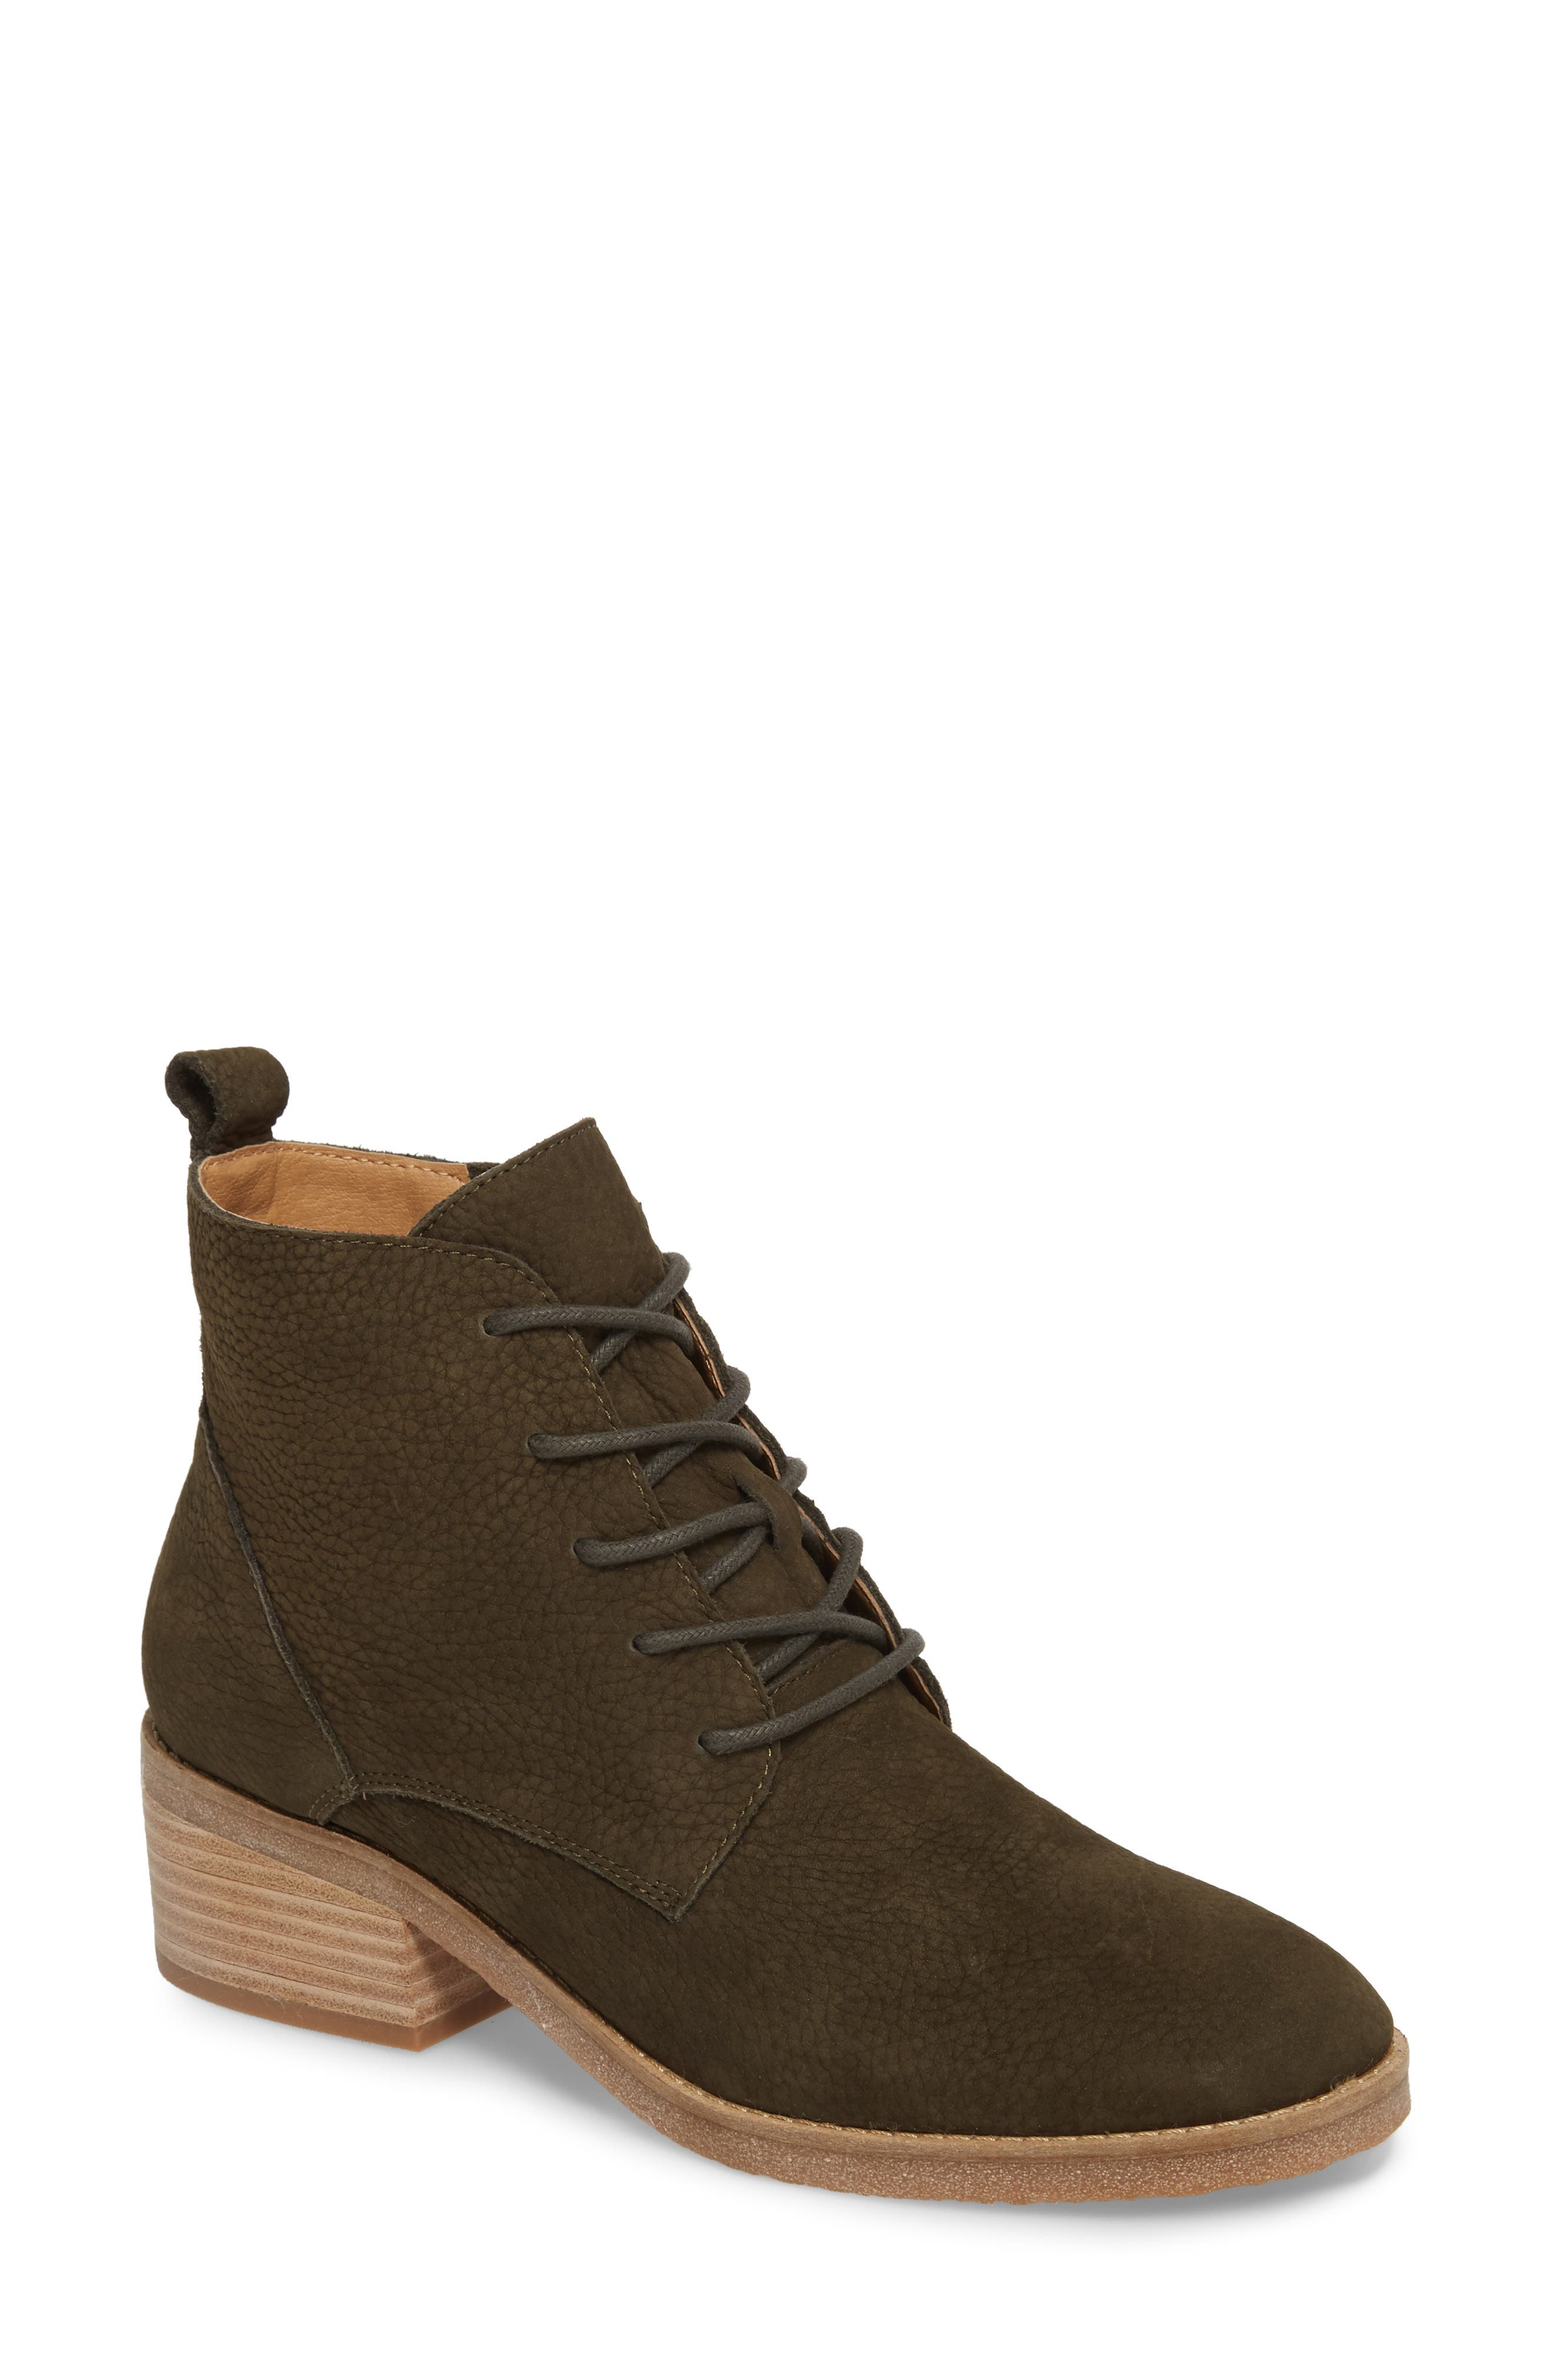 Main Image - Lucky Brand Tamela Lace-Up Bootie (Women)